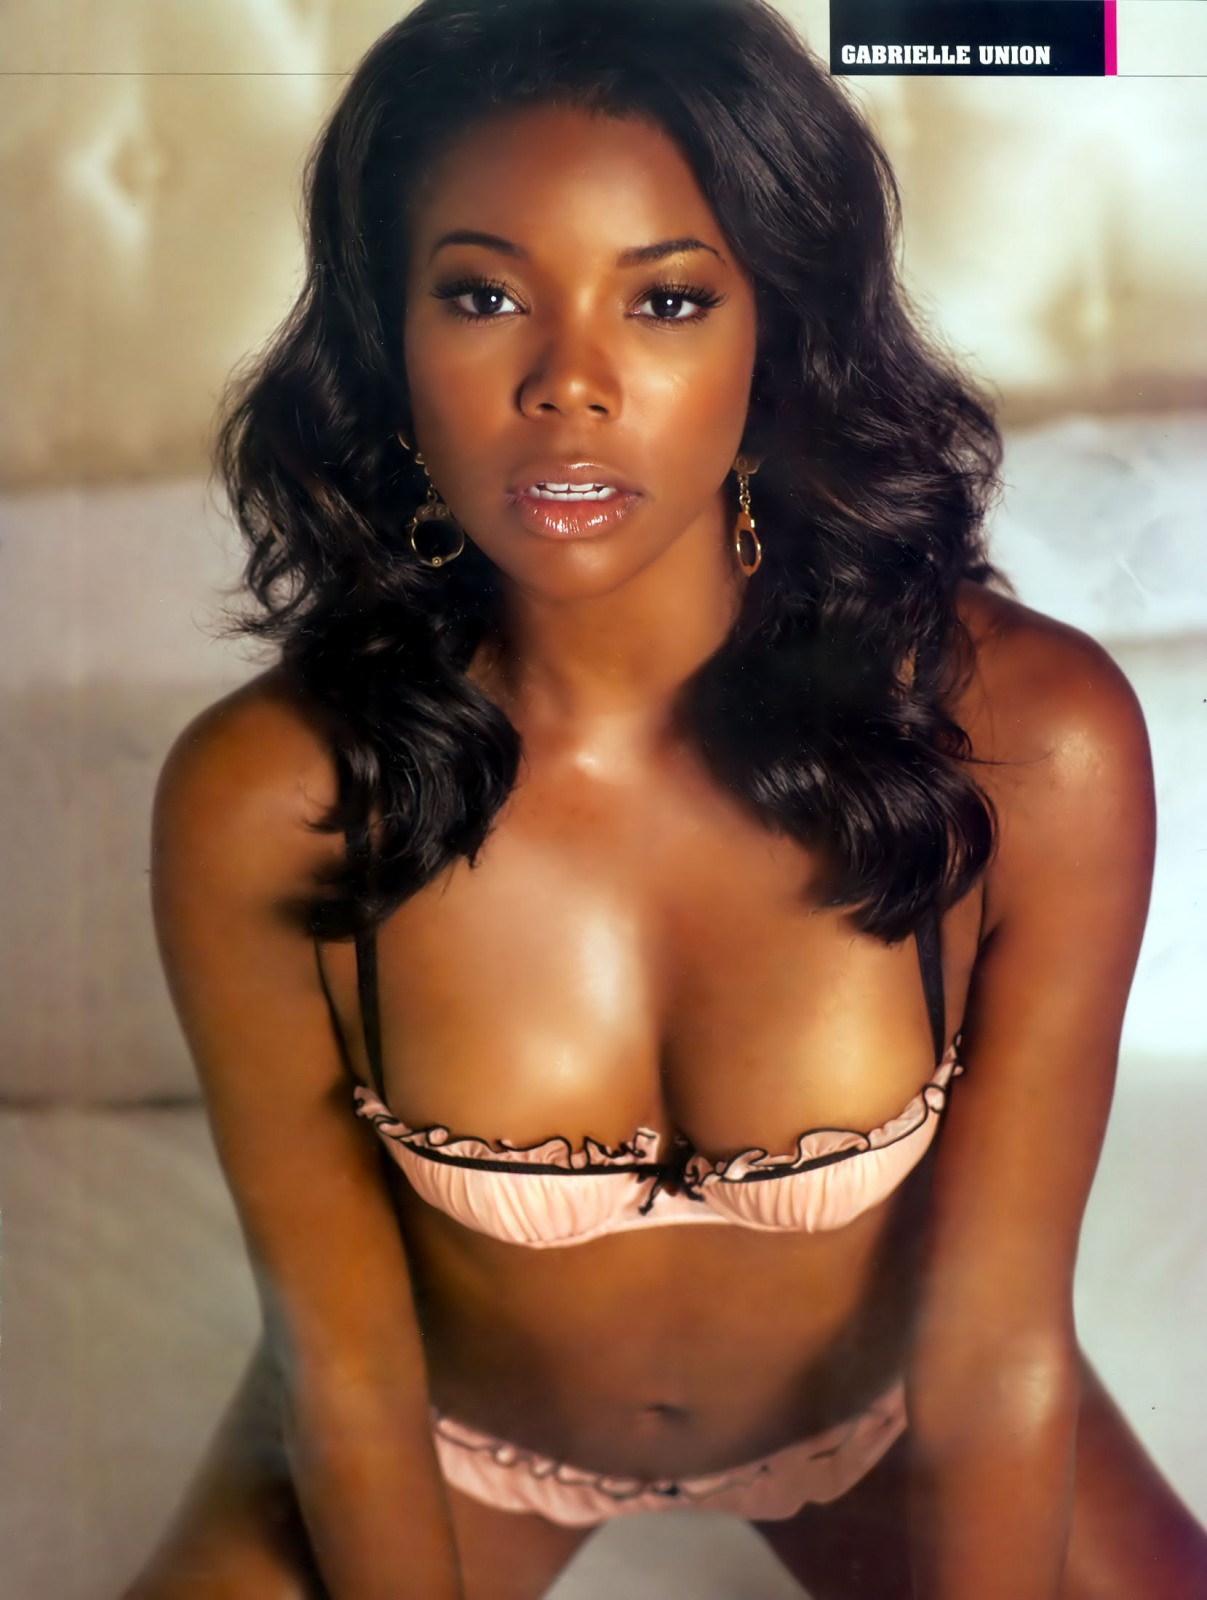 MultiCultClassics 10039 State Of The Gabrielle Union